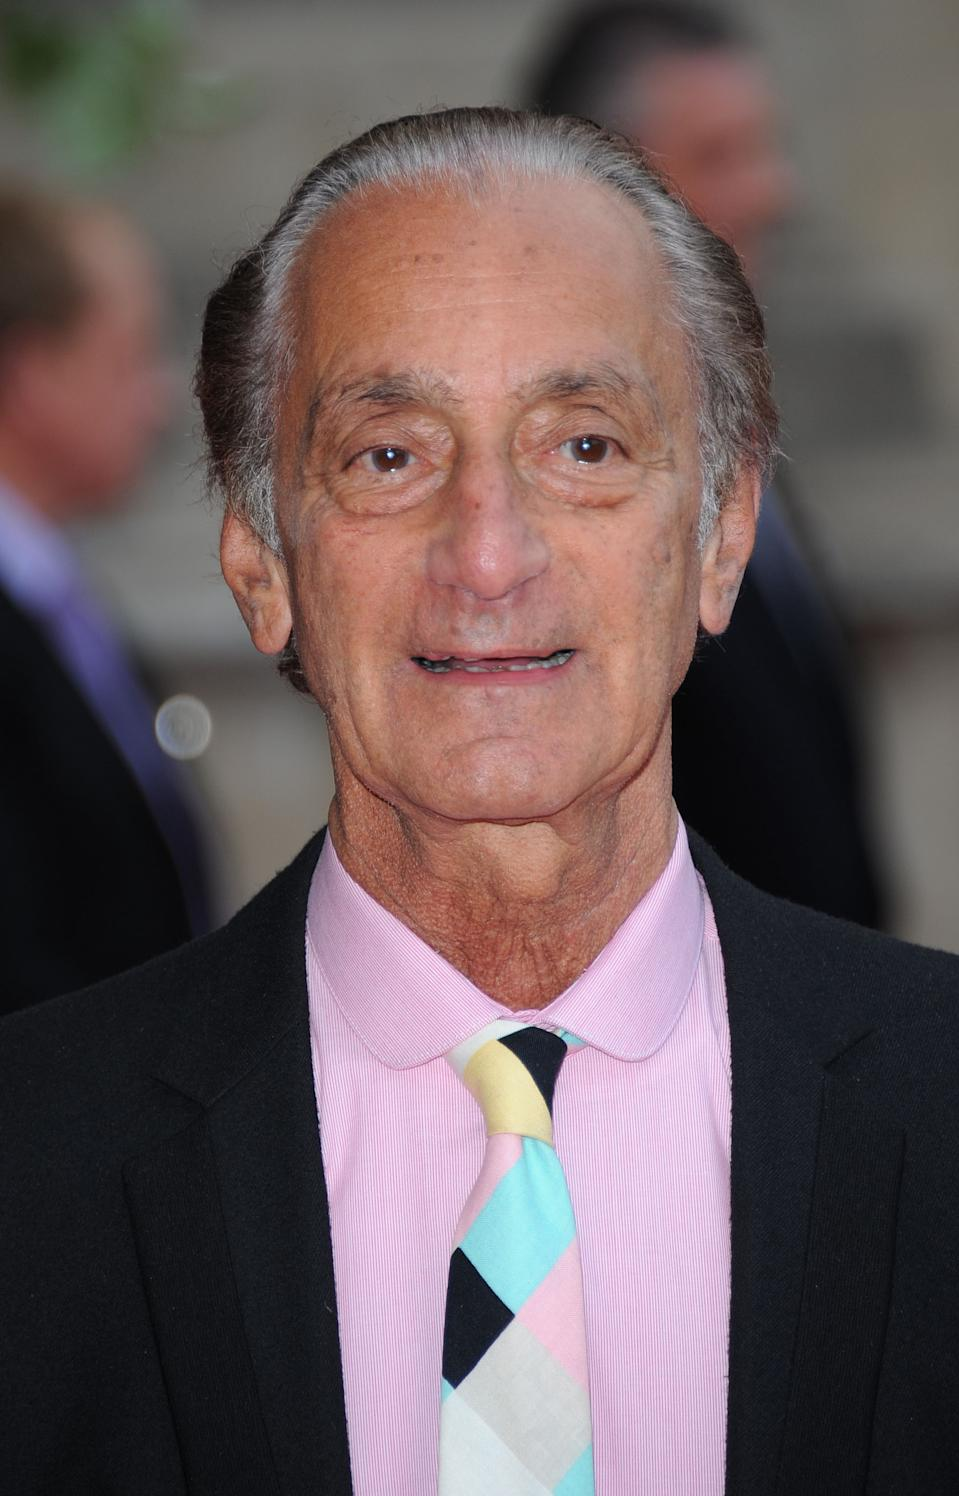 LONDON, UNITED KINGDOM - MAY 15: David Sassoon attends a private view for Ballgowns: British Glamour Since 1950, featuring more than sixty designs from 1950 to the present day, at The V&A on May 15, 2012 in London, England. (Photo by Stuart Wilson/Getty Images)